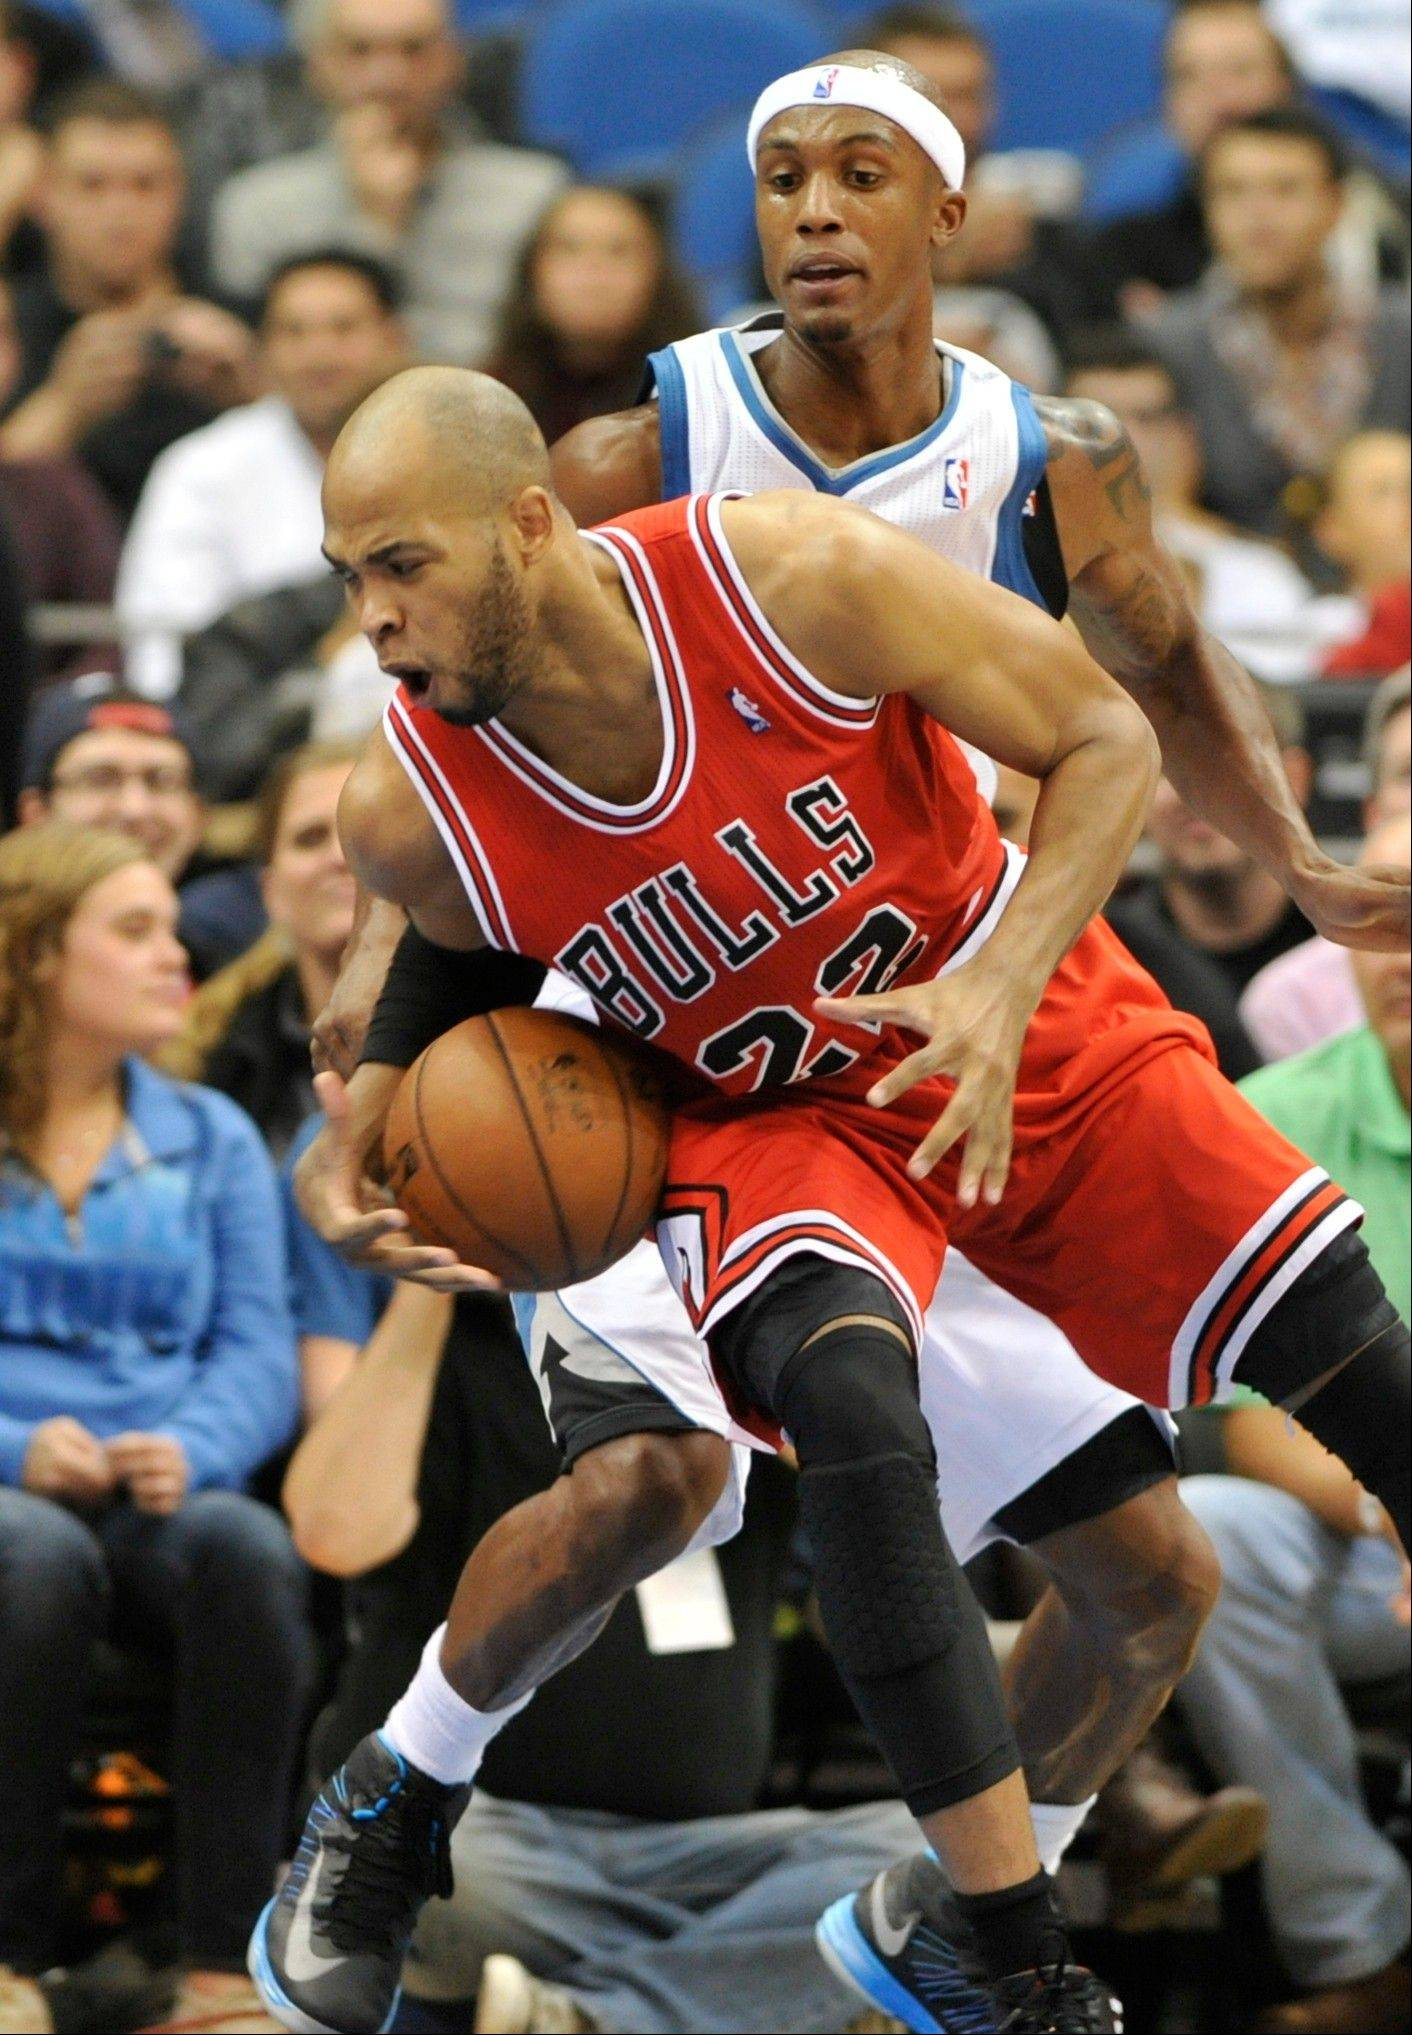 Taj Gibson earned his four-year contract extension, says Bulls coach Tom Thibodeau.